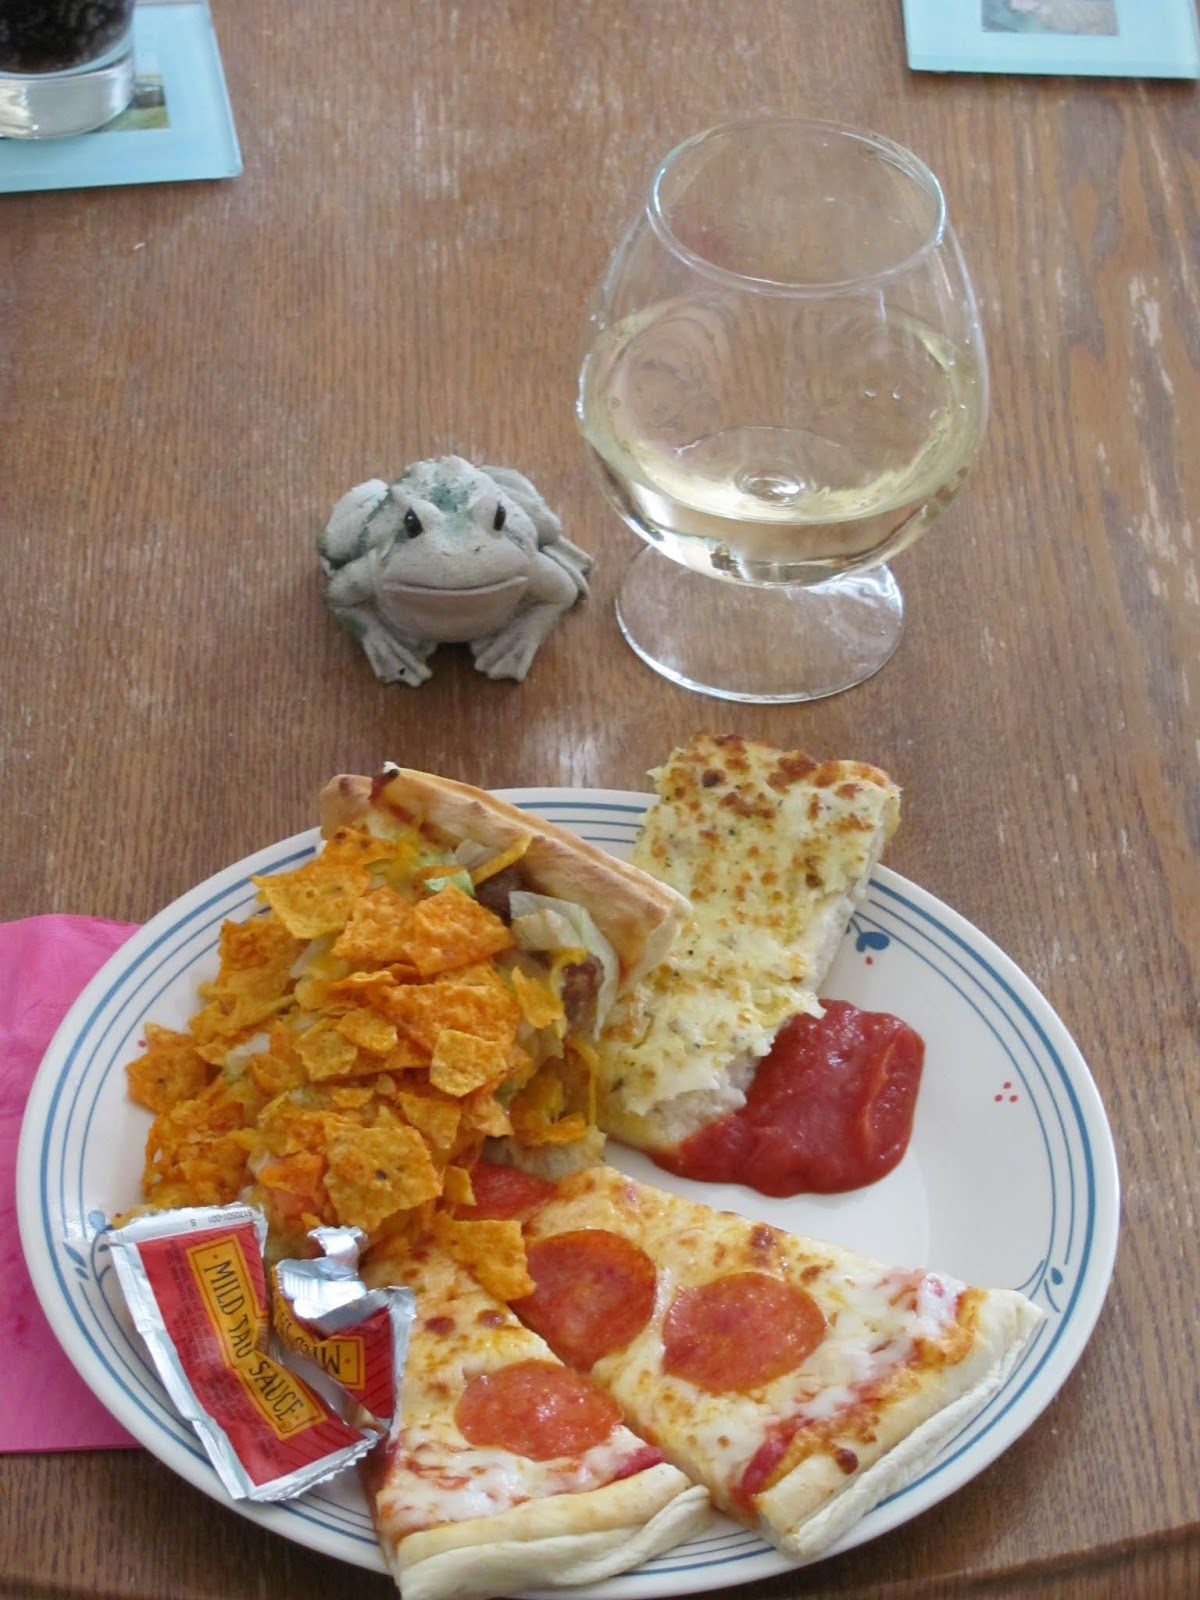 Frog poses with a plate of pizza and white wine in Coralville, Iowa